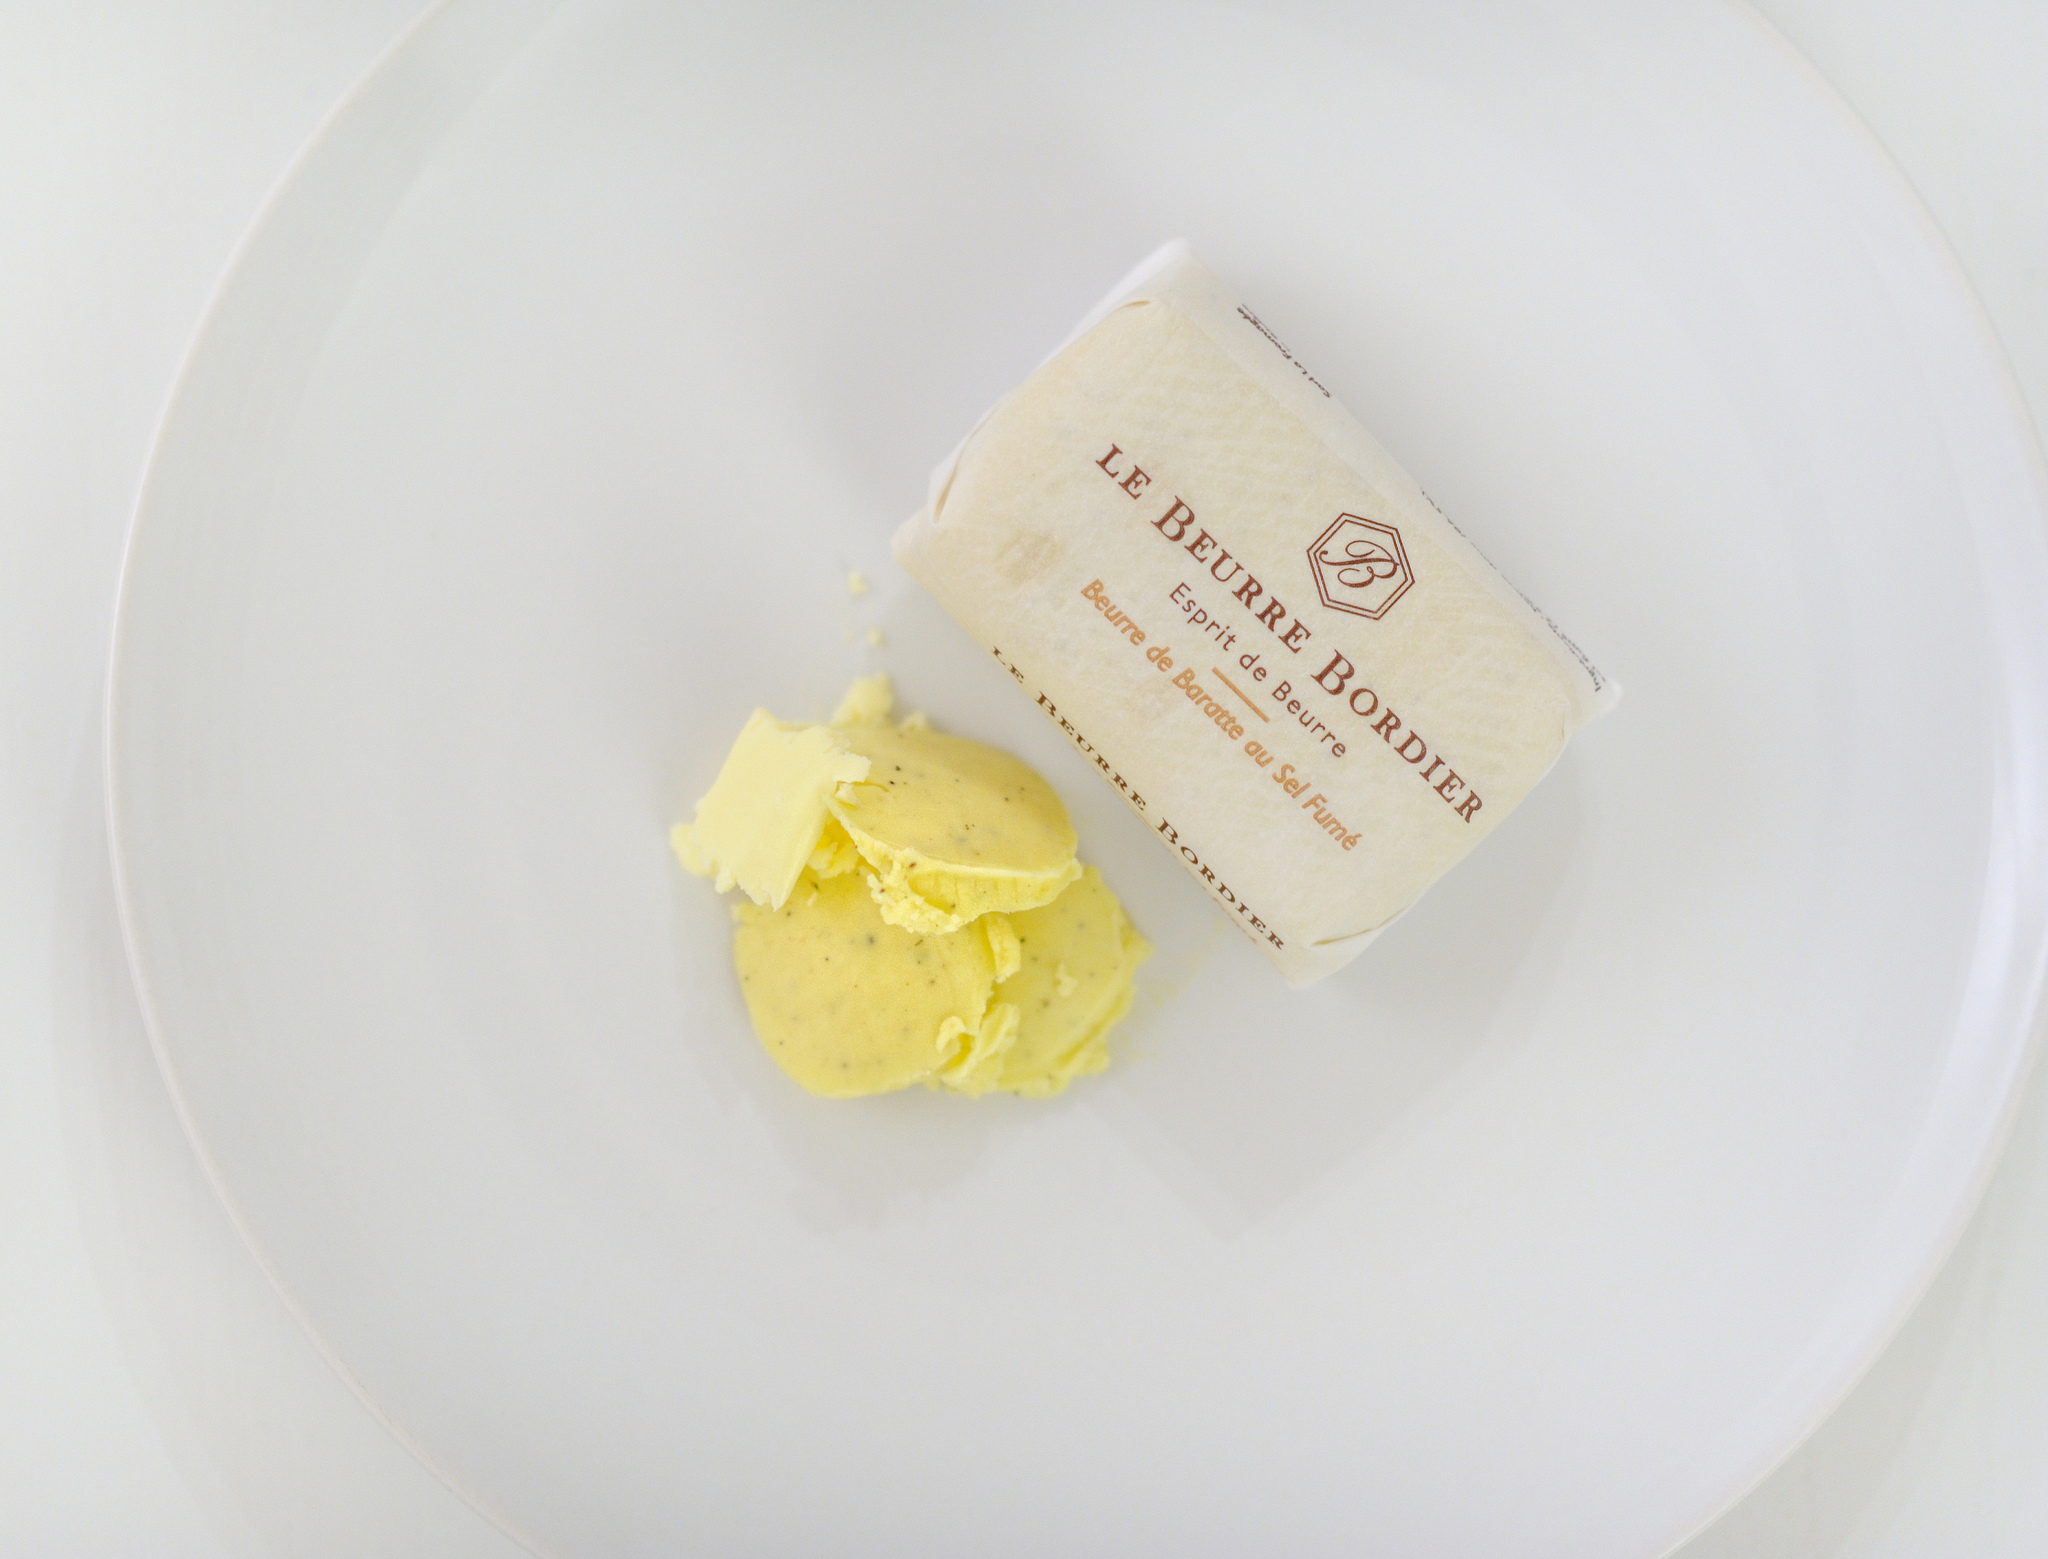 Why does French butter taste so good? It doesn't get better than Le Beurre Bordier, a creamy, tasty artisanal butter.